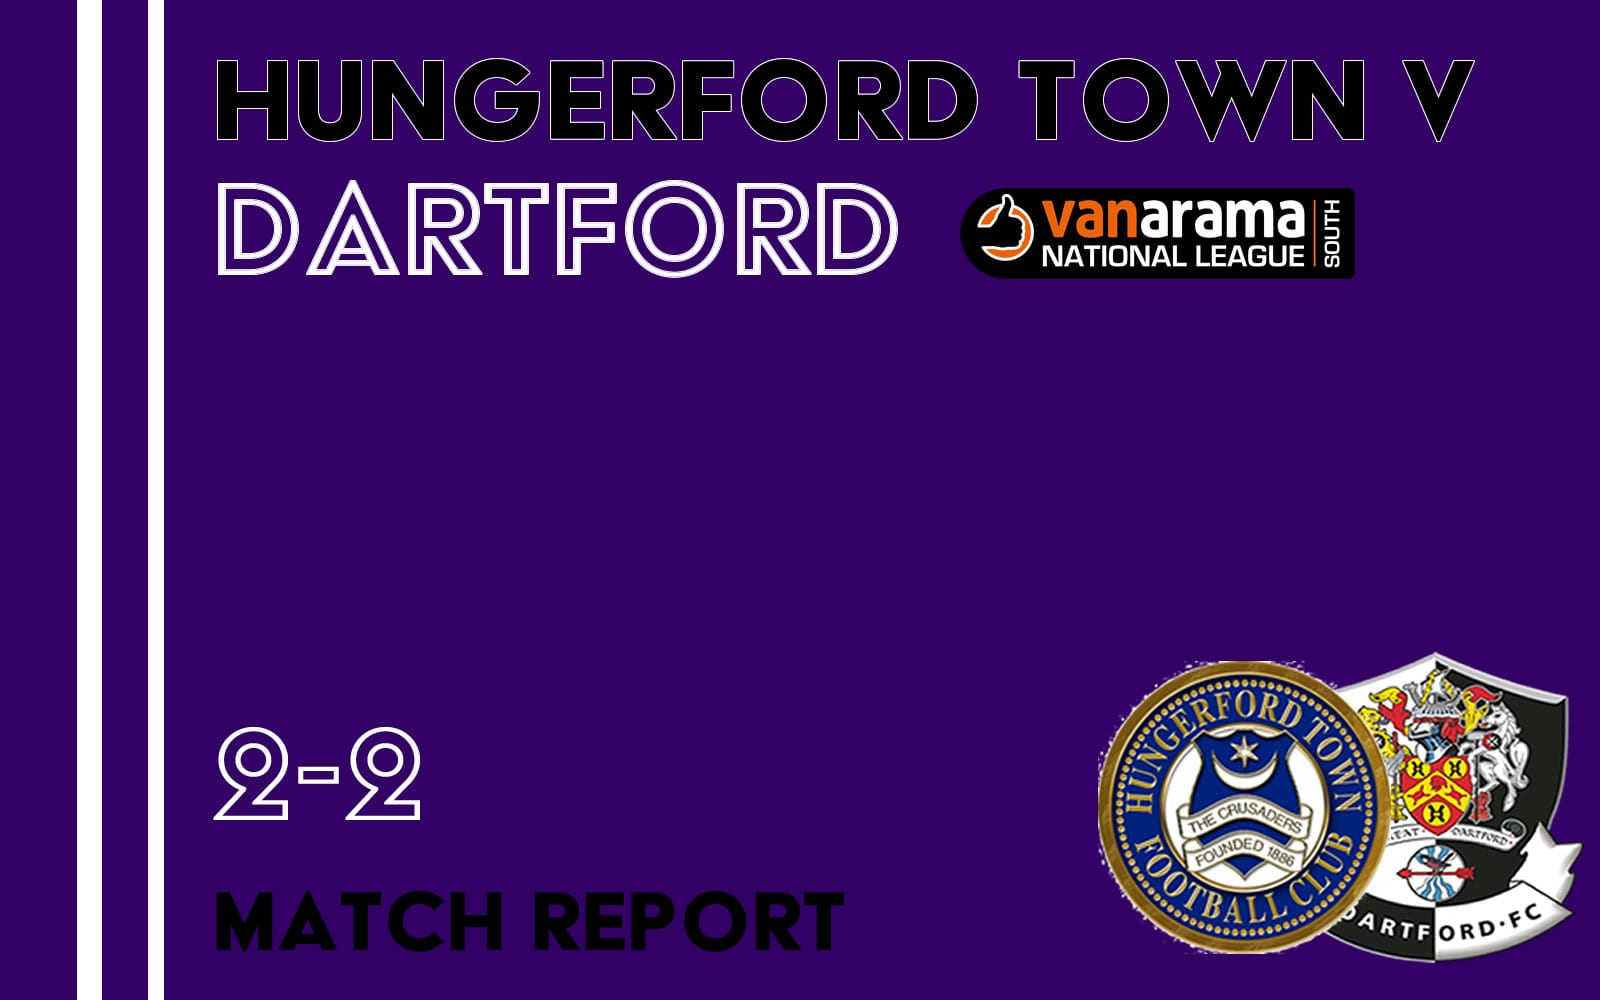 Hungerford Town v Dartford